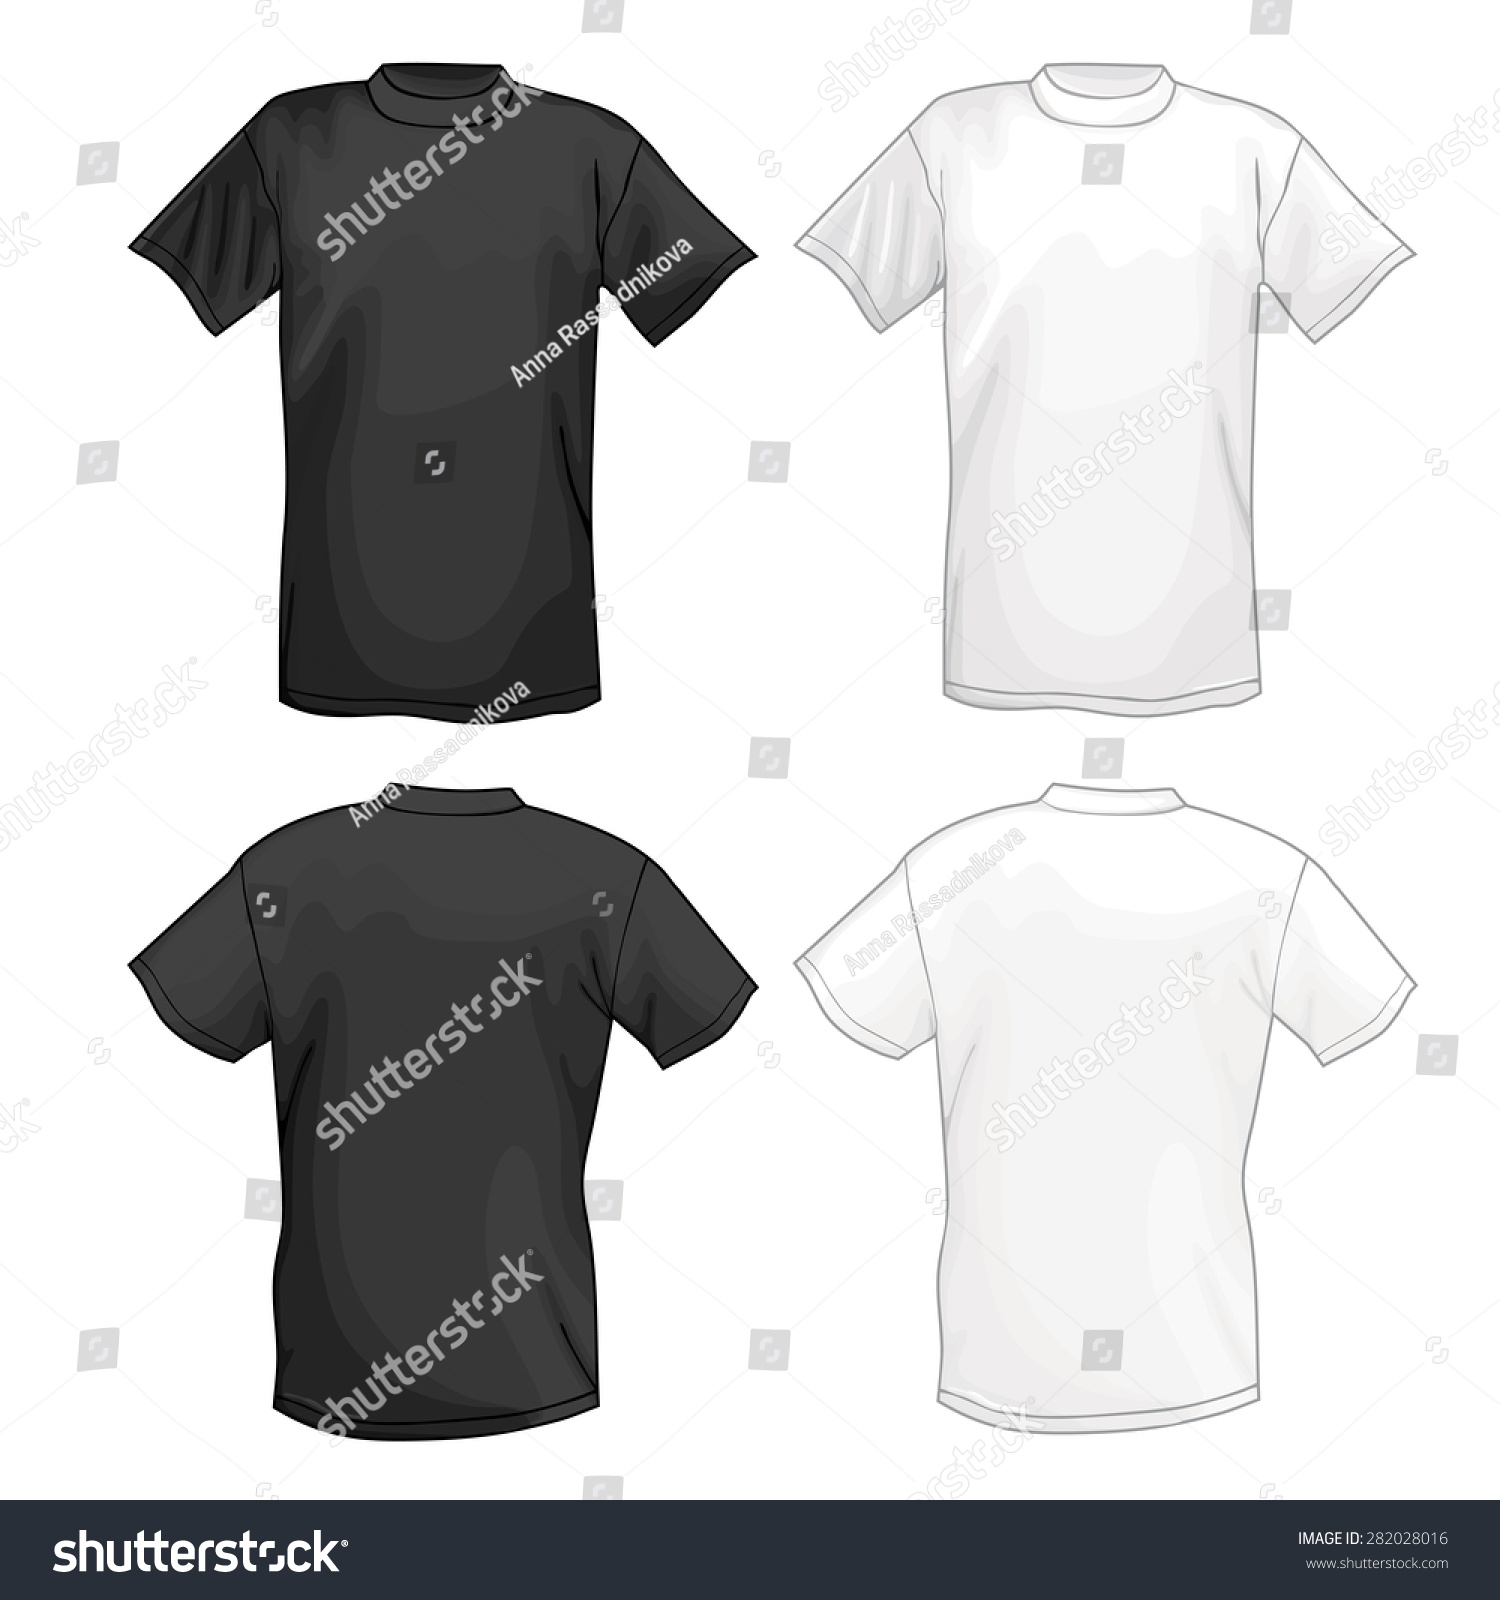 Black t shirt vector - White And Black Vector T Shirt Design Template Front Back Vector